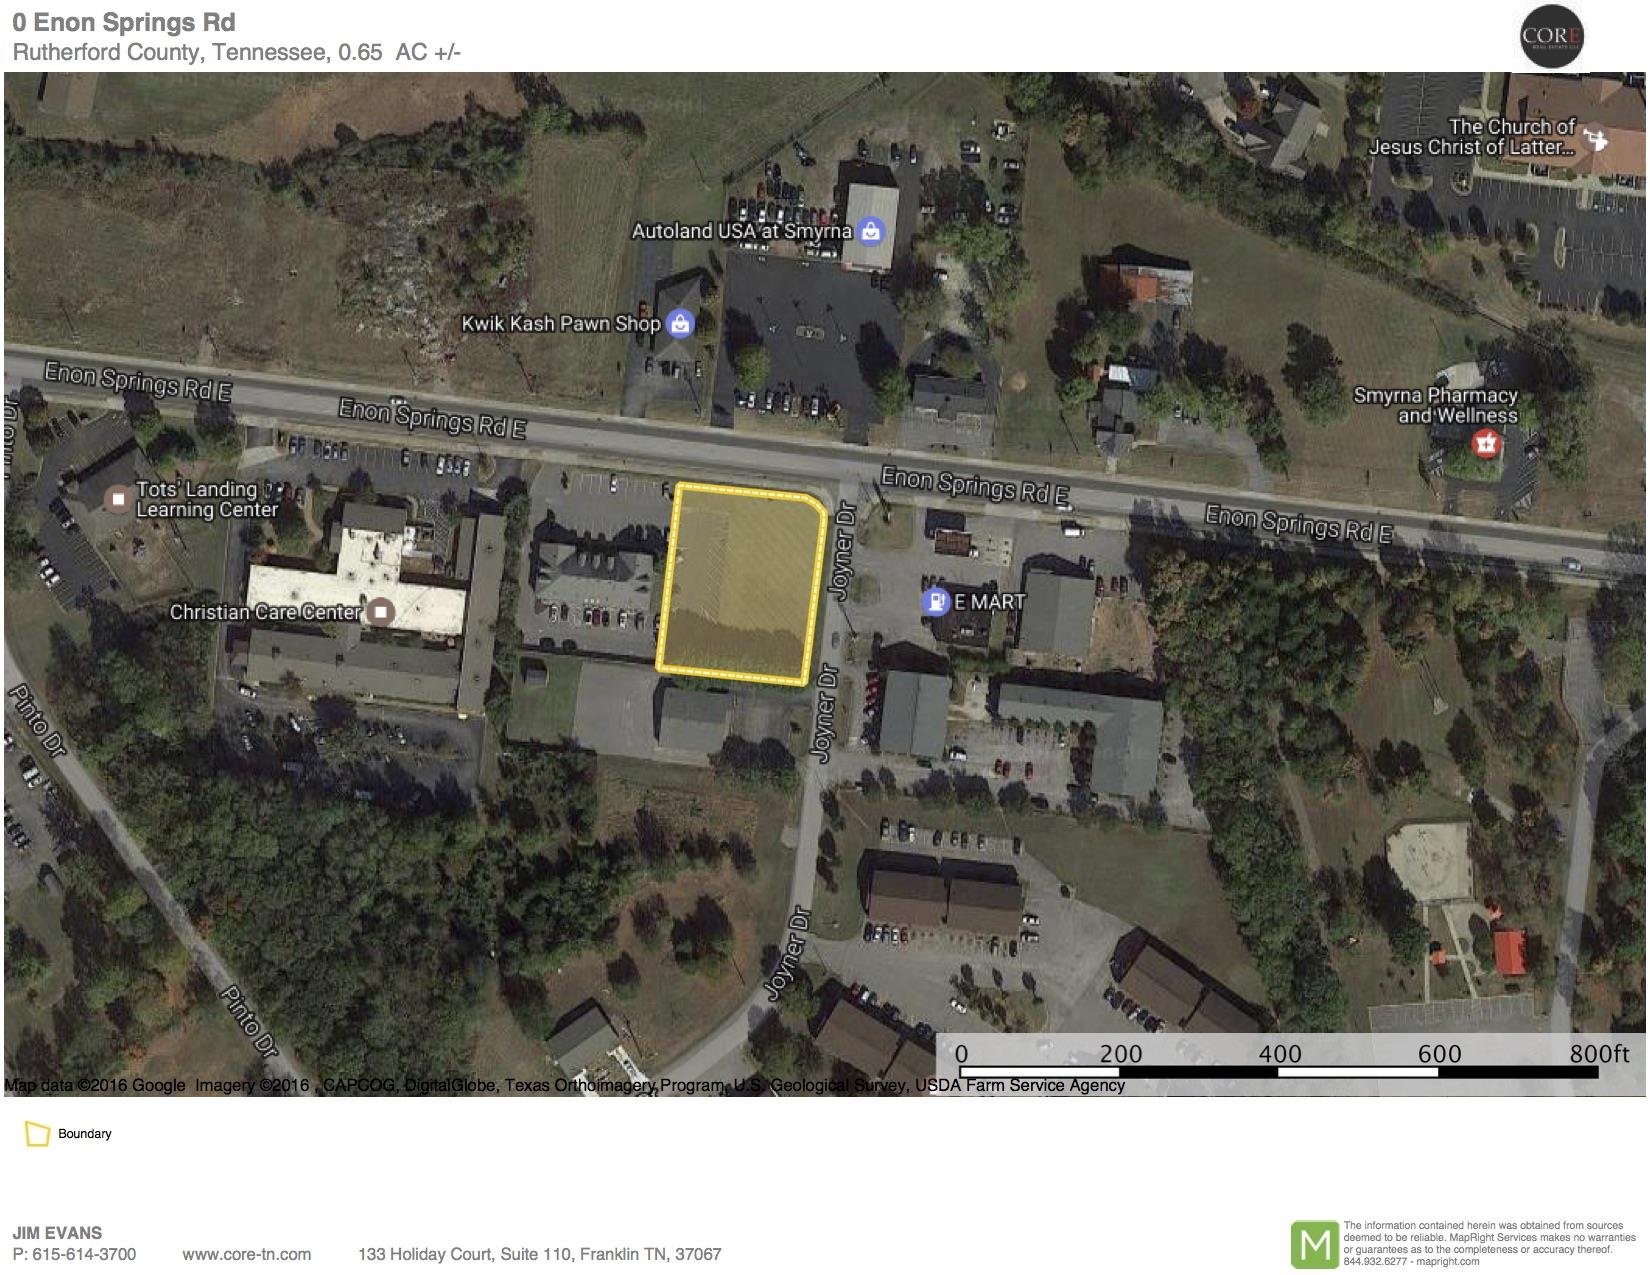 Image of  for Sale near Smyrna, Tennessee, in Rutherford County: 0.65 acres